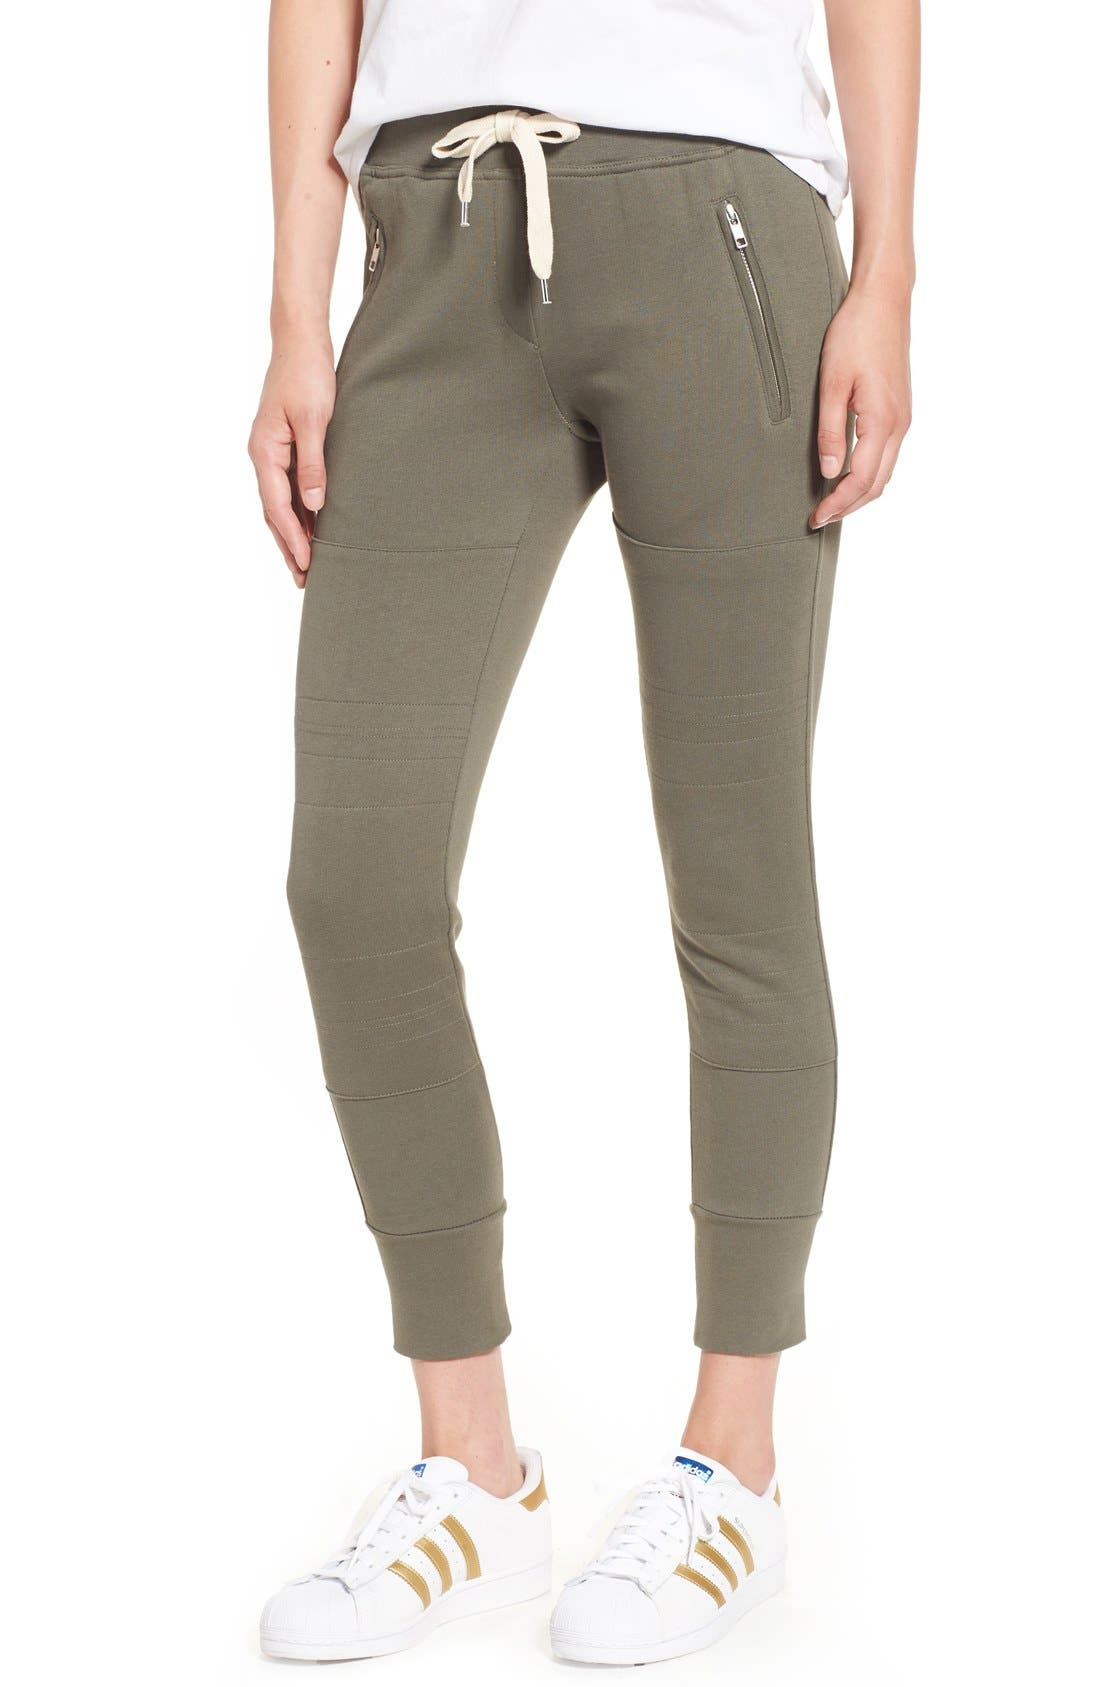 Main Image - Sincerely Jules 'Lux' Skinny Cotton Jogger Pants